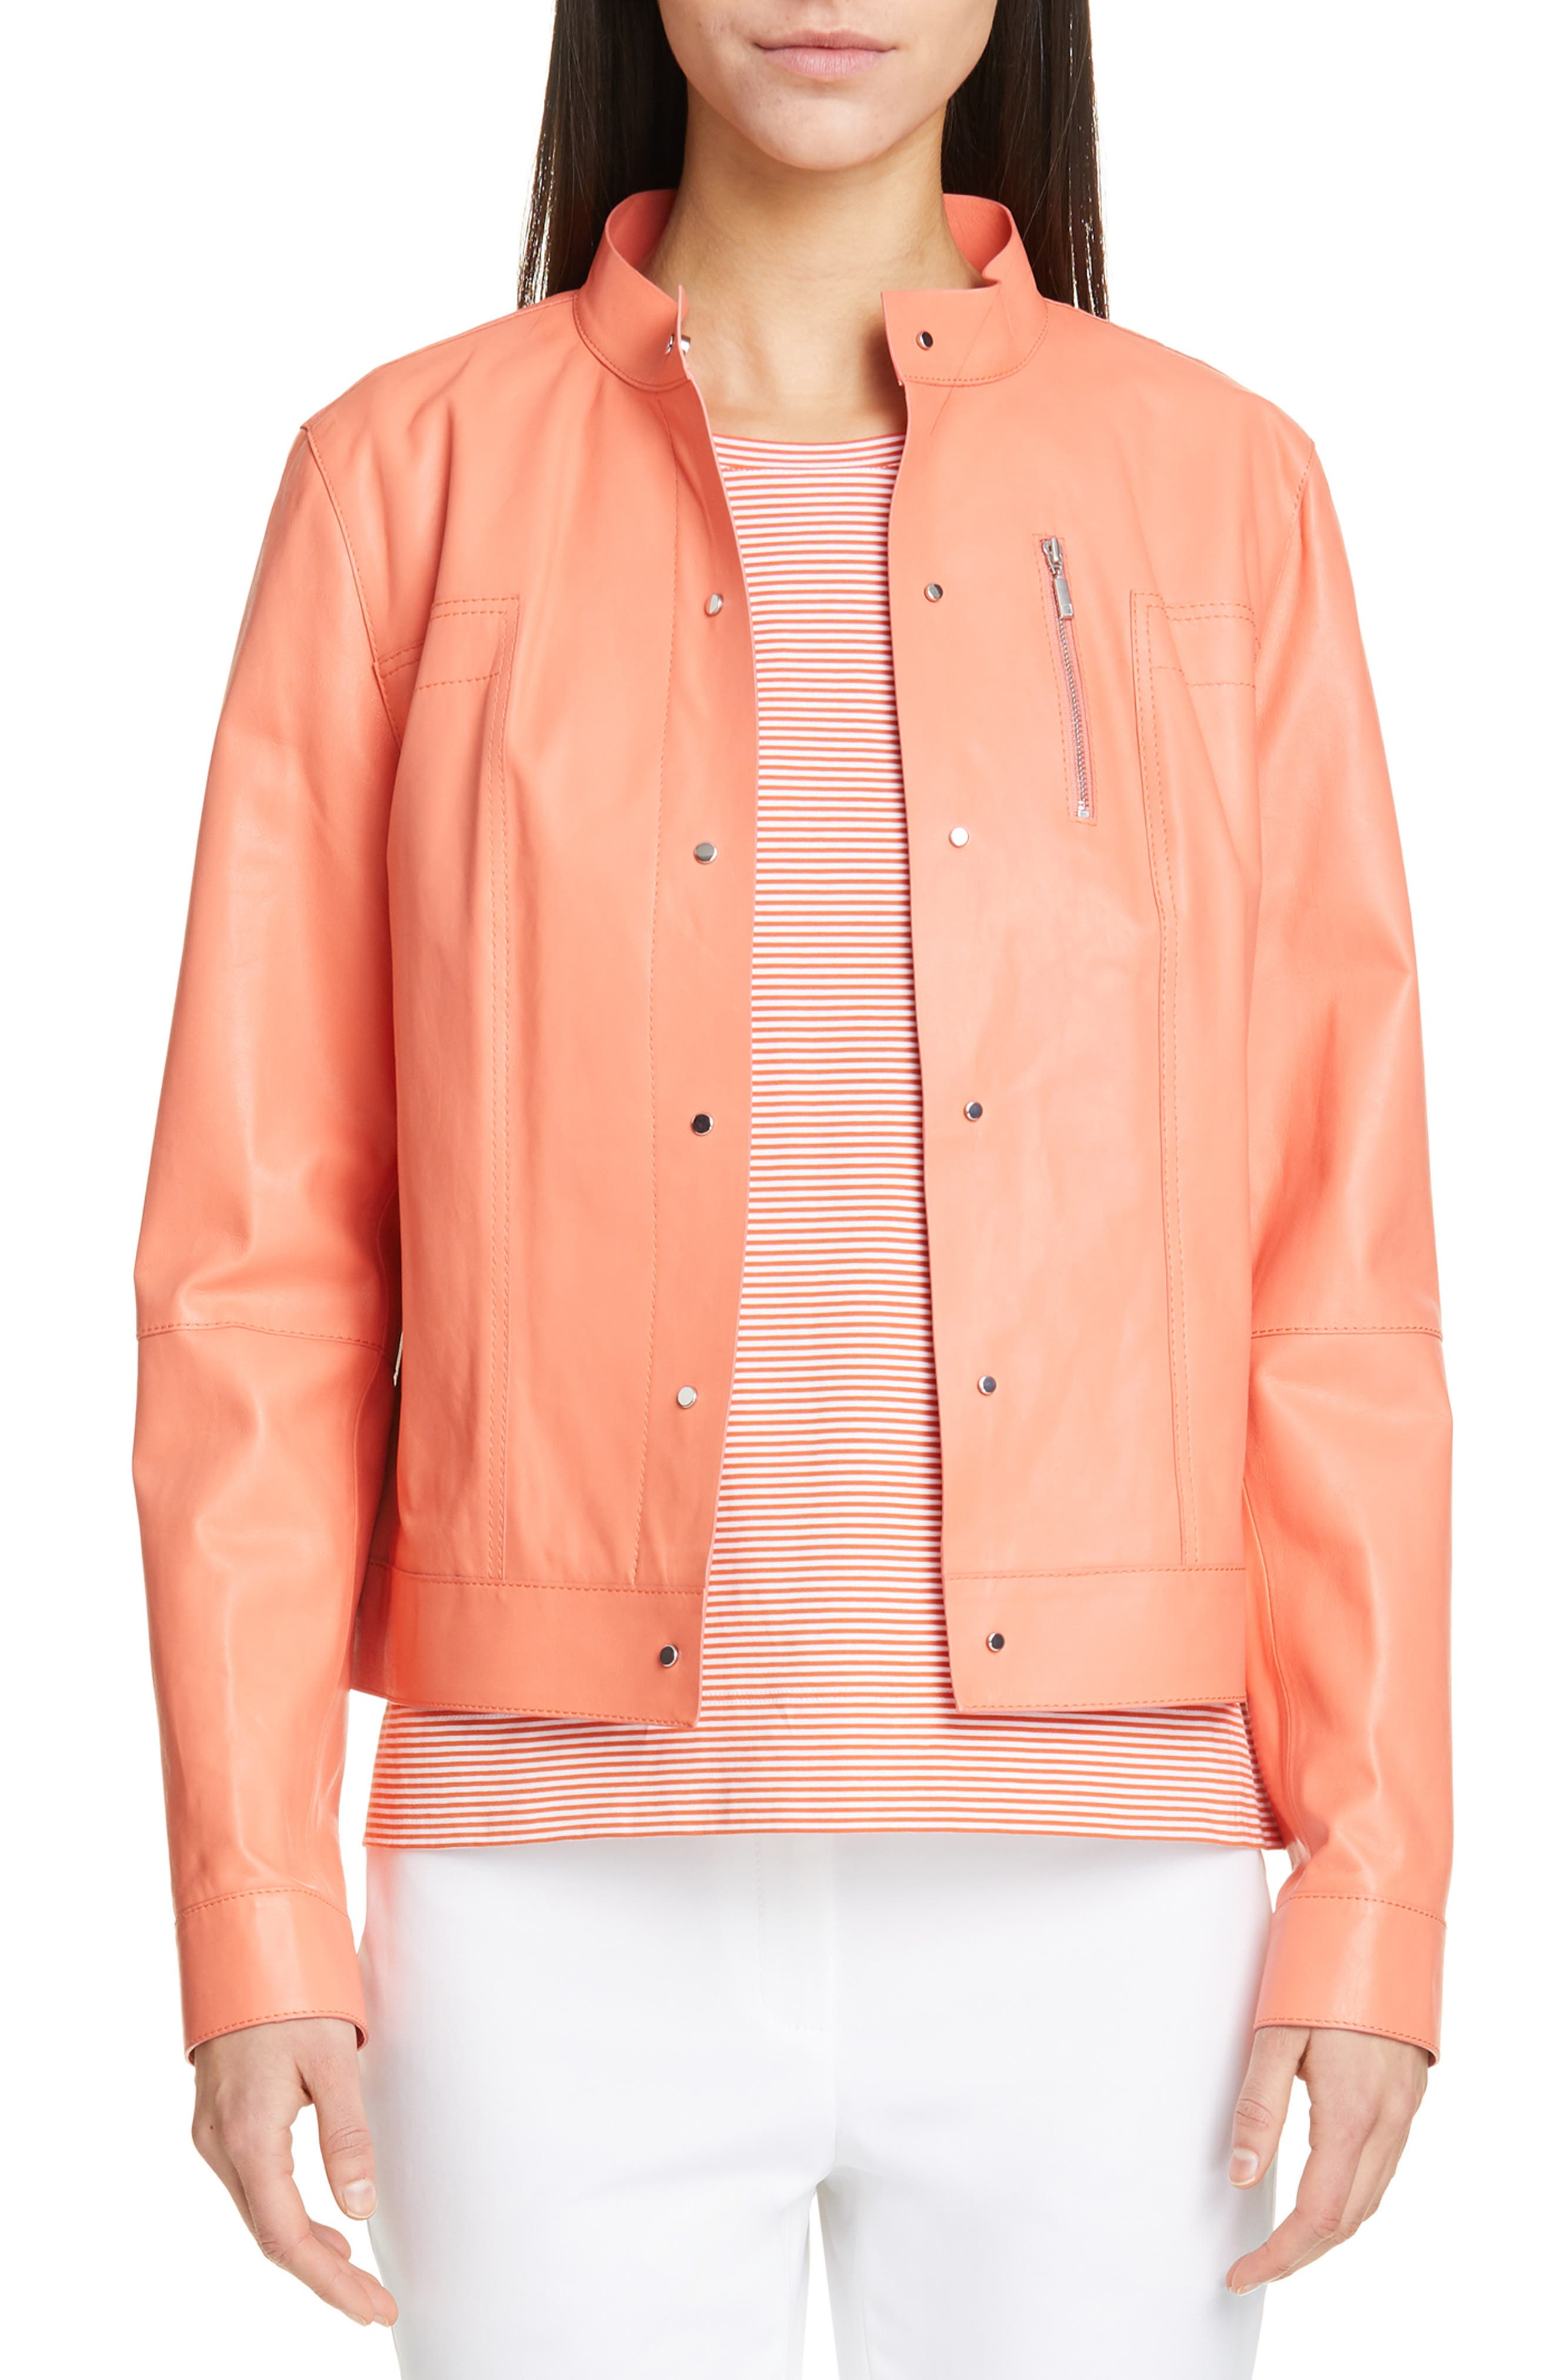 LAFAYETTE 148 NEW YORK Galicia Leather Jacket, Main, color, PEACH ROSE